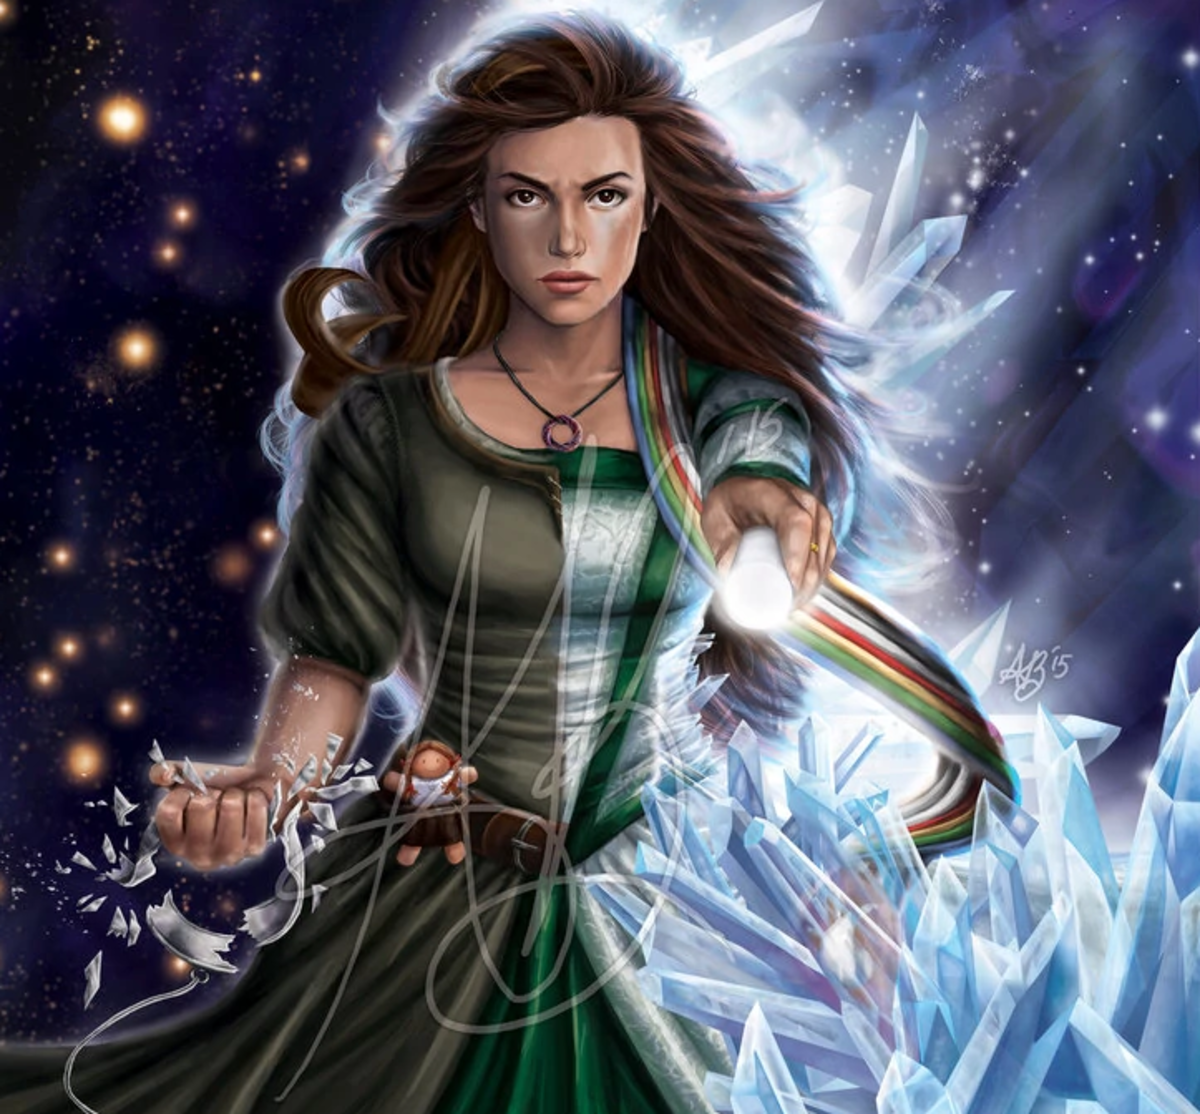 Egwene in The Wheel of Time